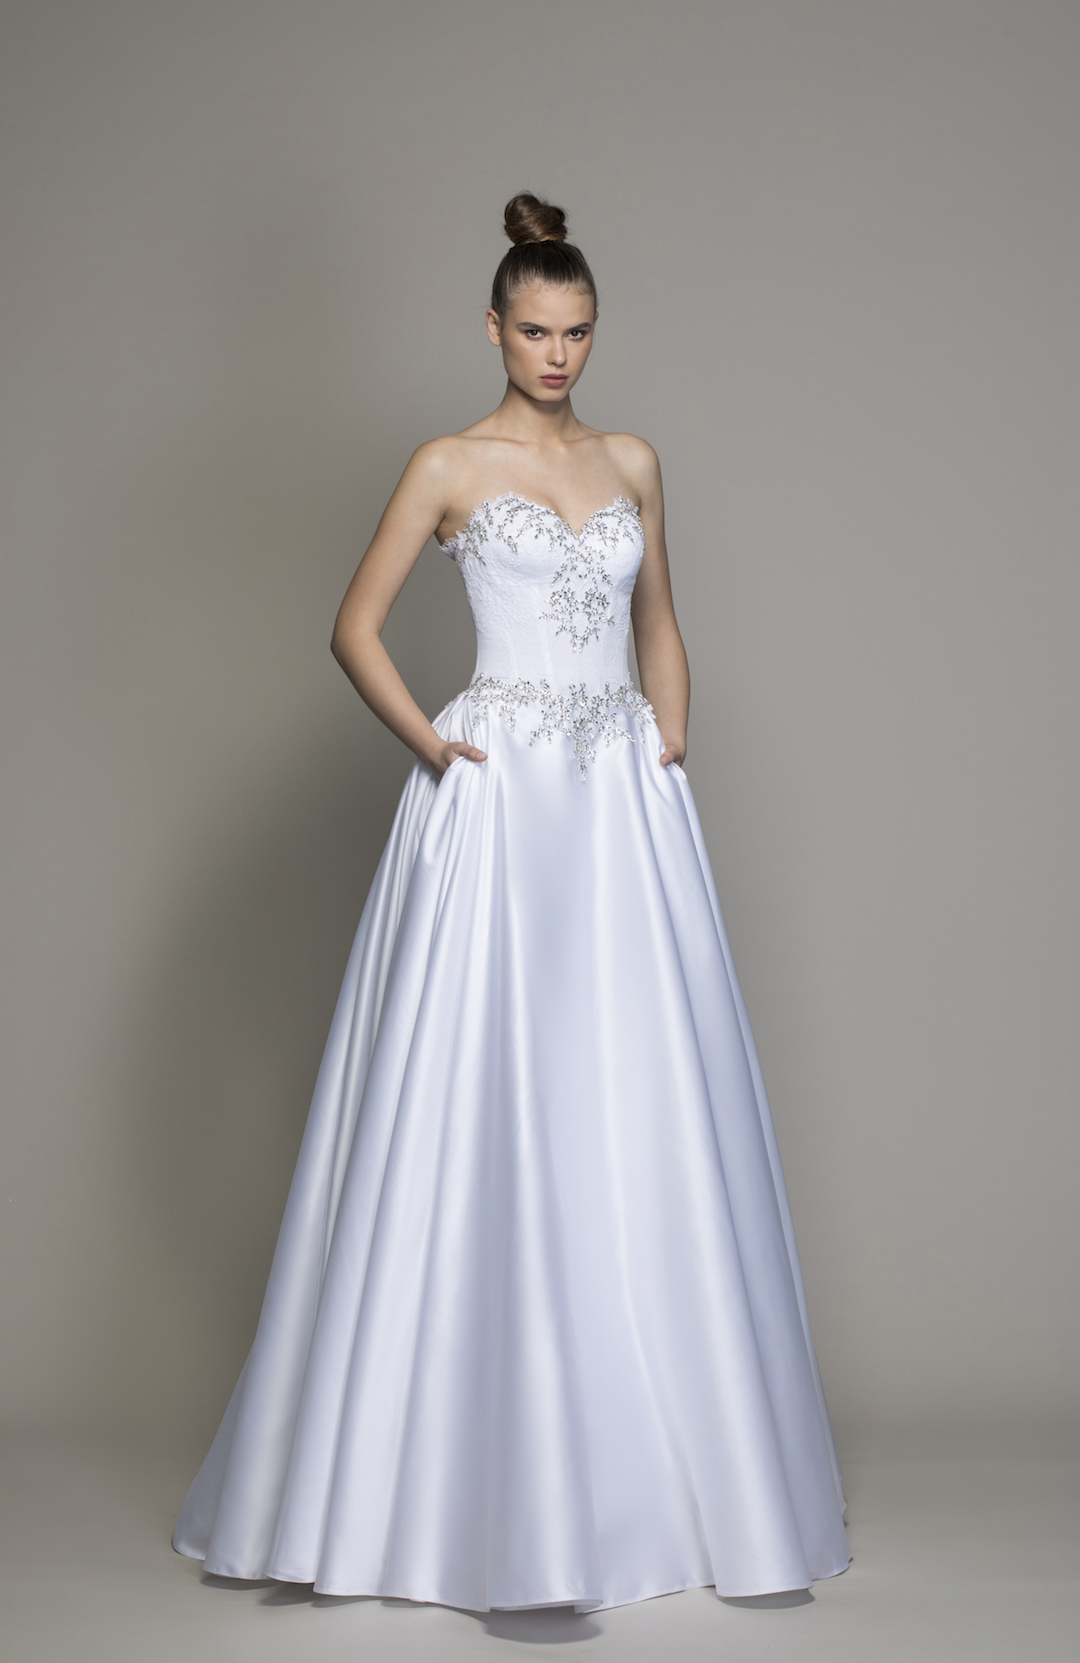 Strapless Ball Gown Wedding Dress With Crystal And Lace Bodice Kleinfeld Bridal